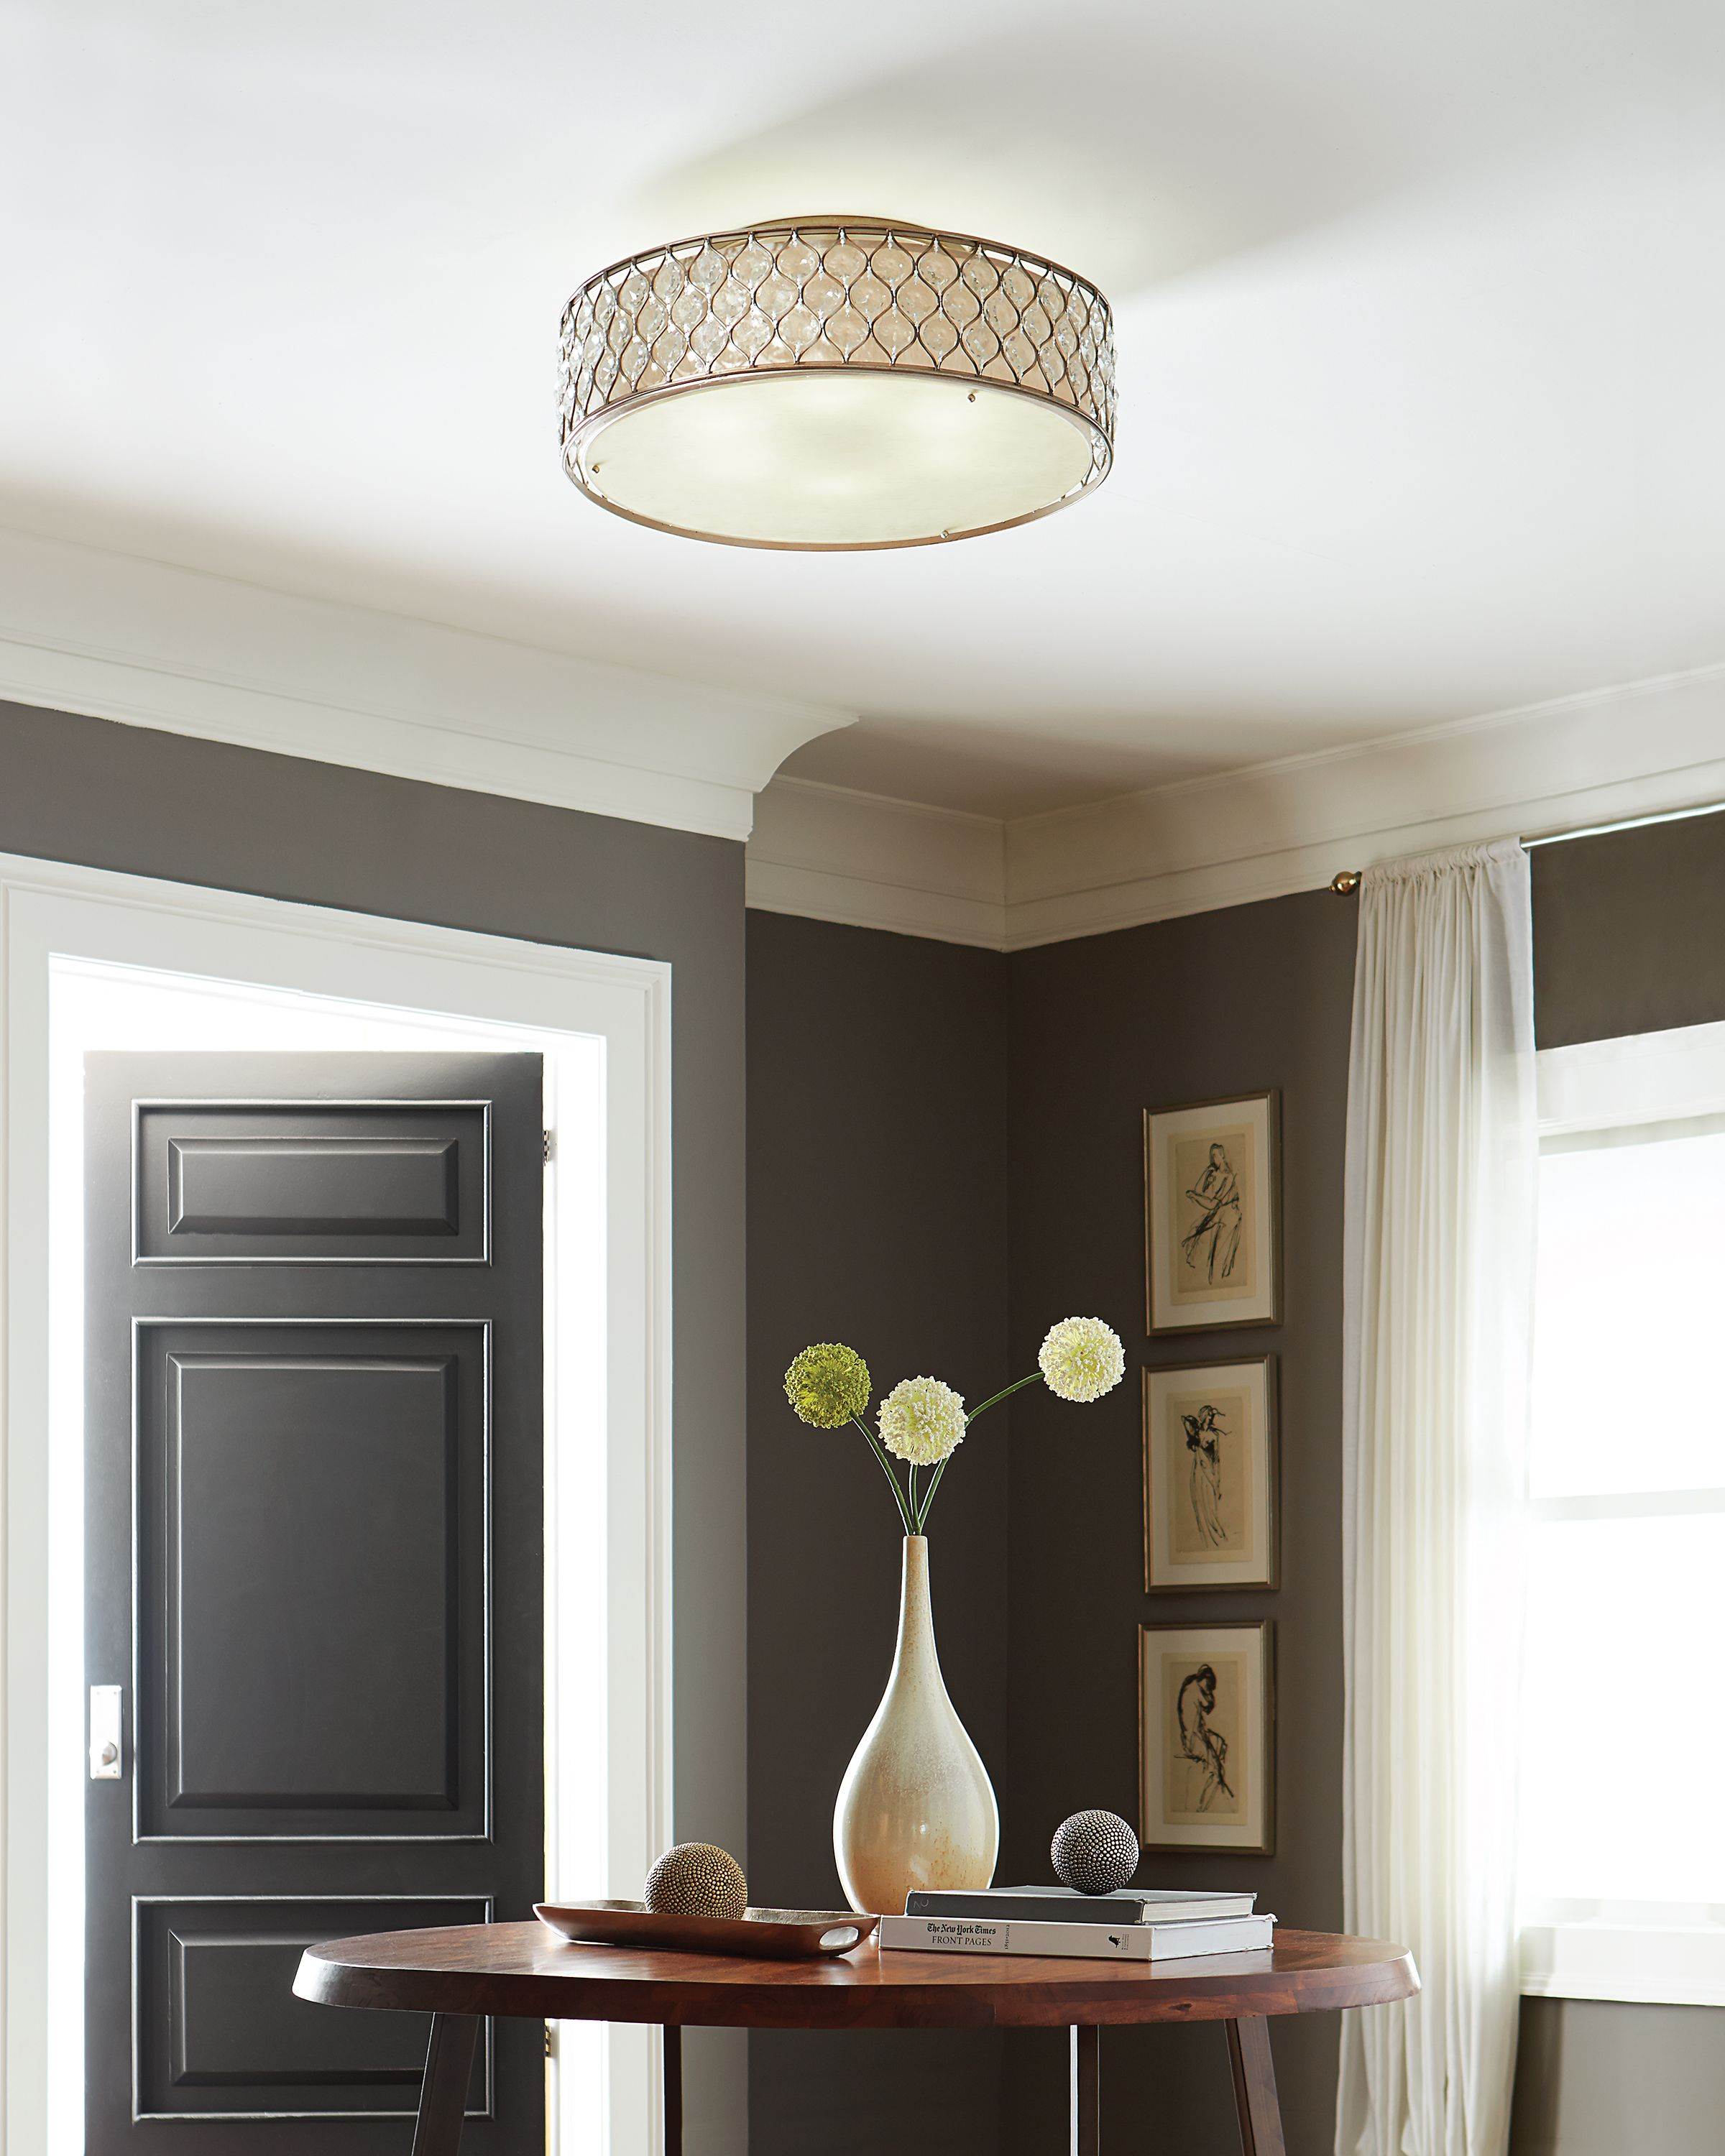 20 Pretty Cool Lighting Ideas For Contemporary Living Room: Pretty But A Bit More Simple Crown Molding. SF329BUS,6